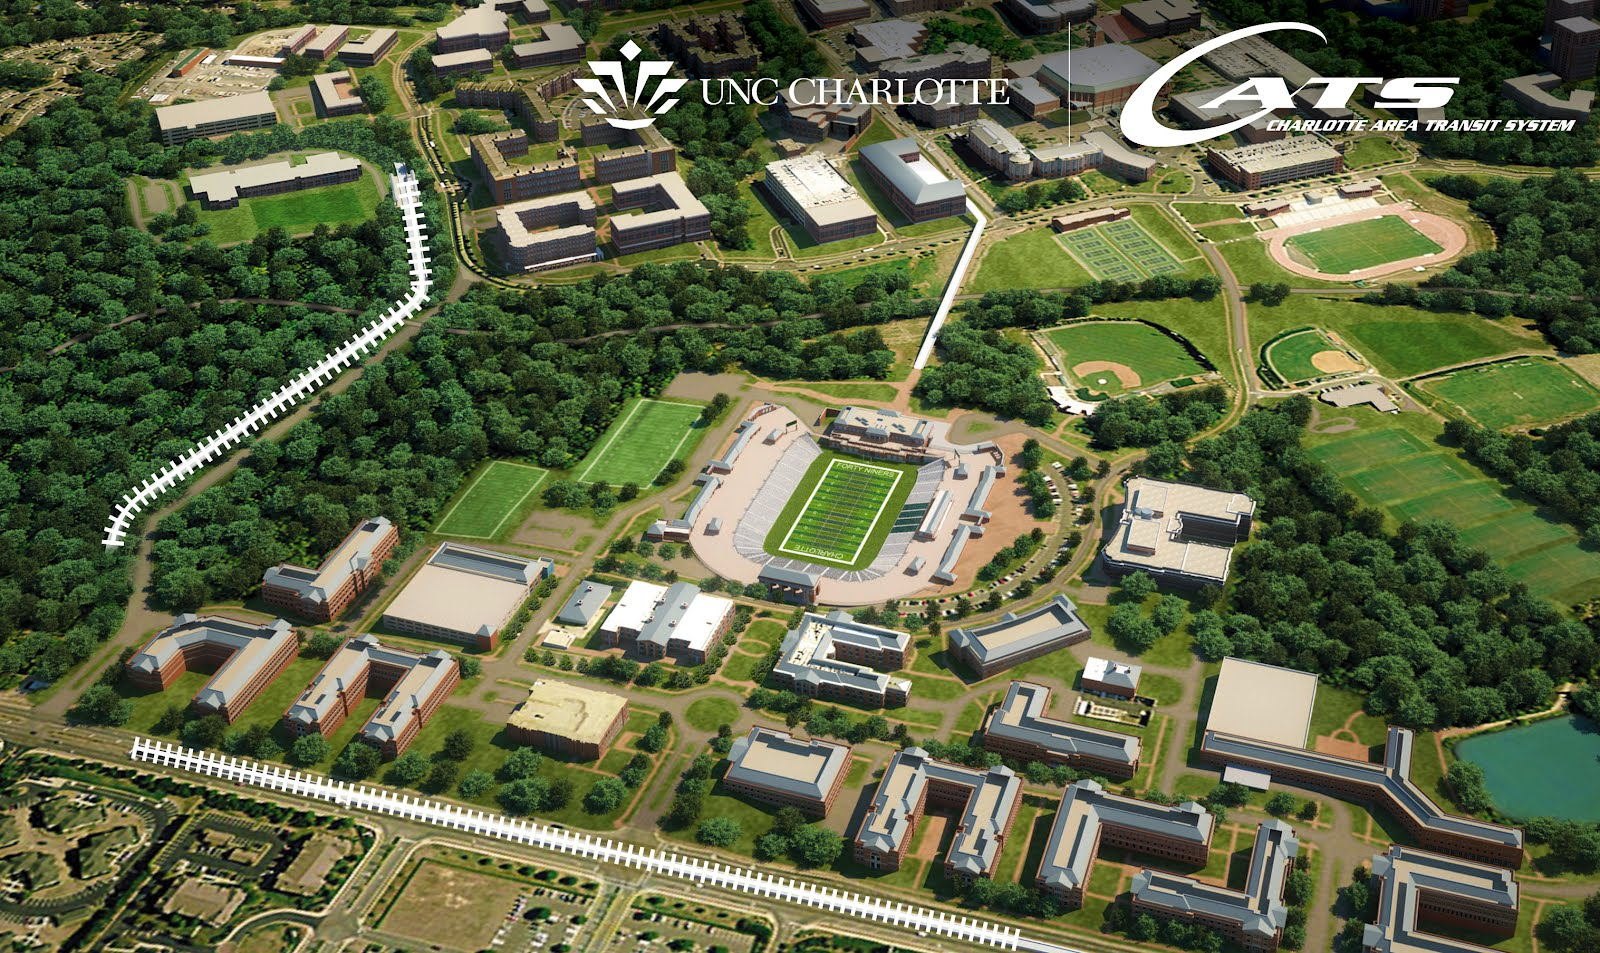 Unc Charlotte News Countdown Continues For Light Rail On Campus